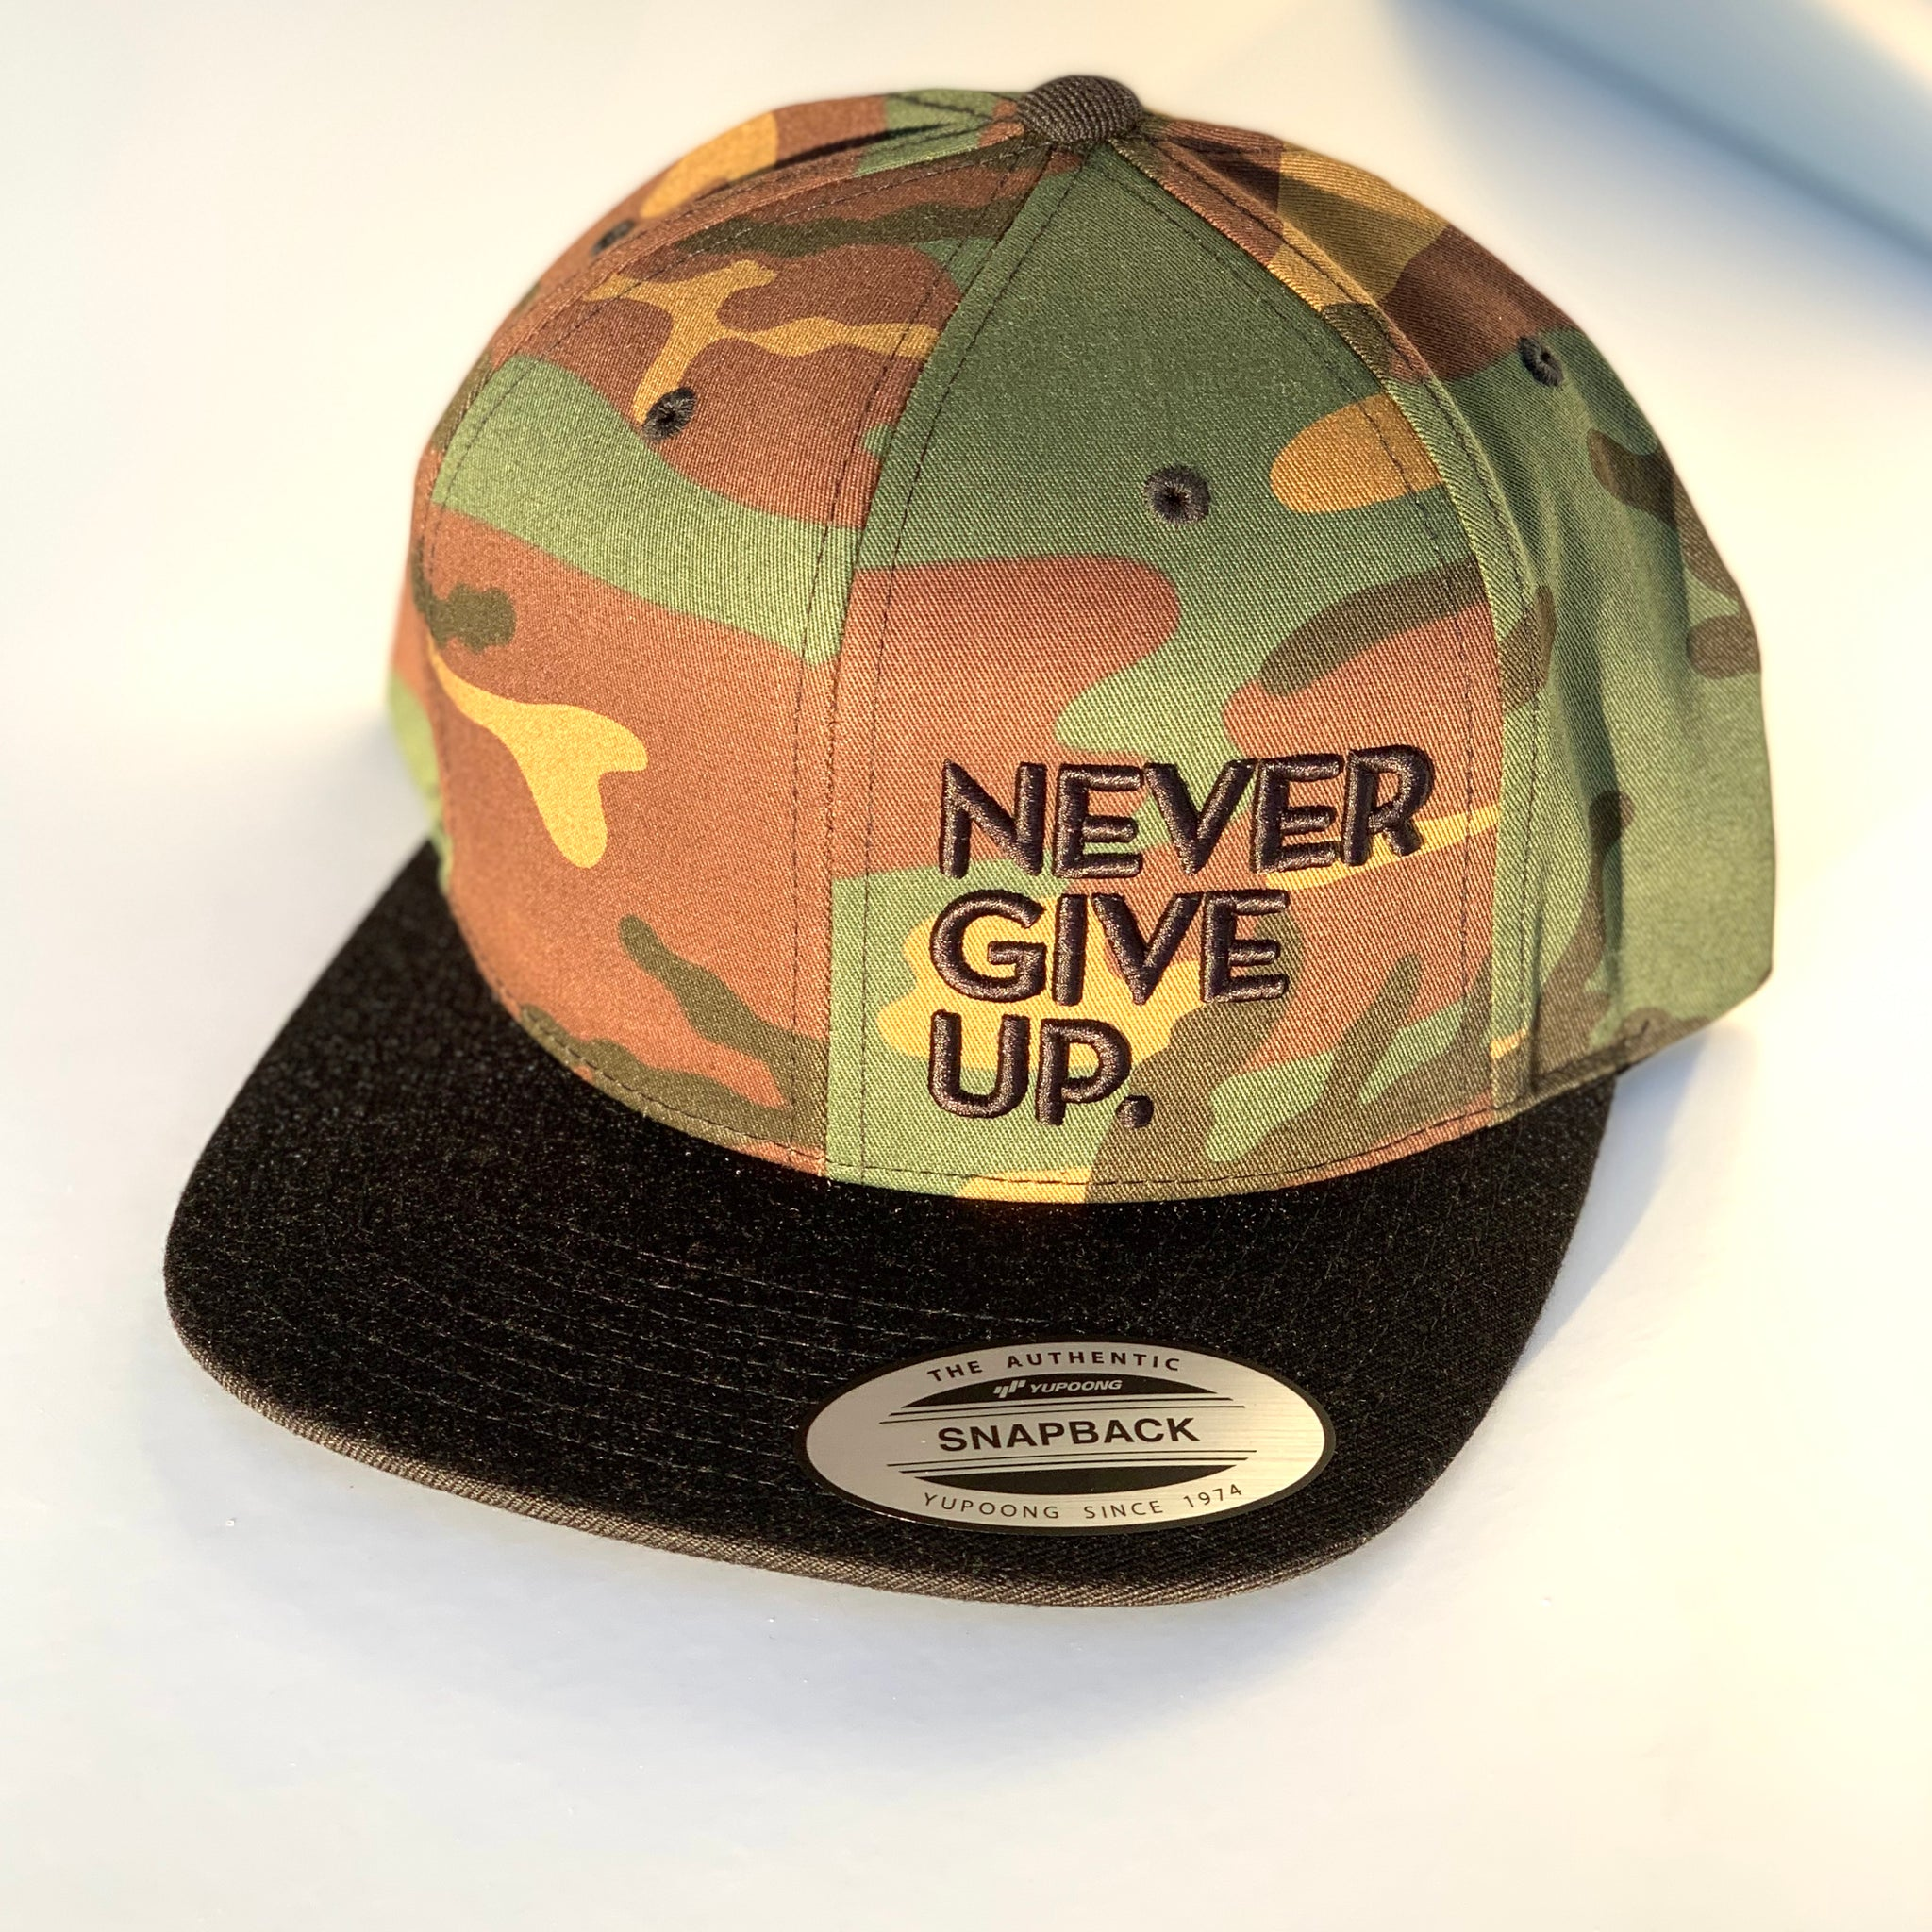 3D CAMO NEVER GIVE UP. HAT